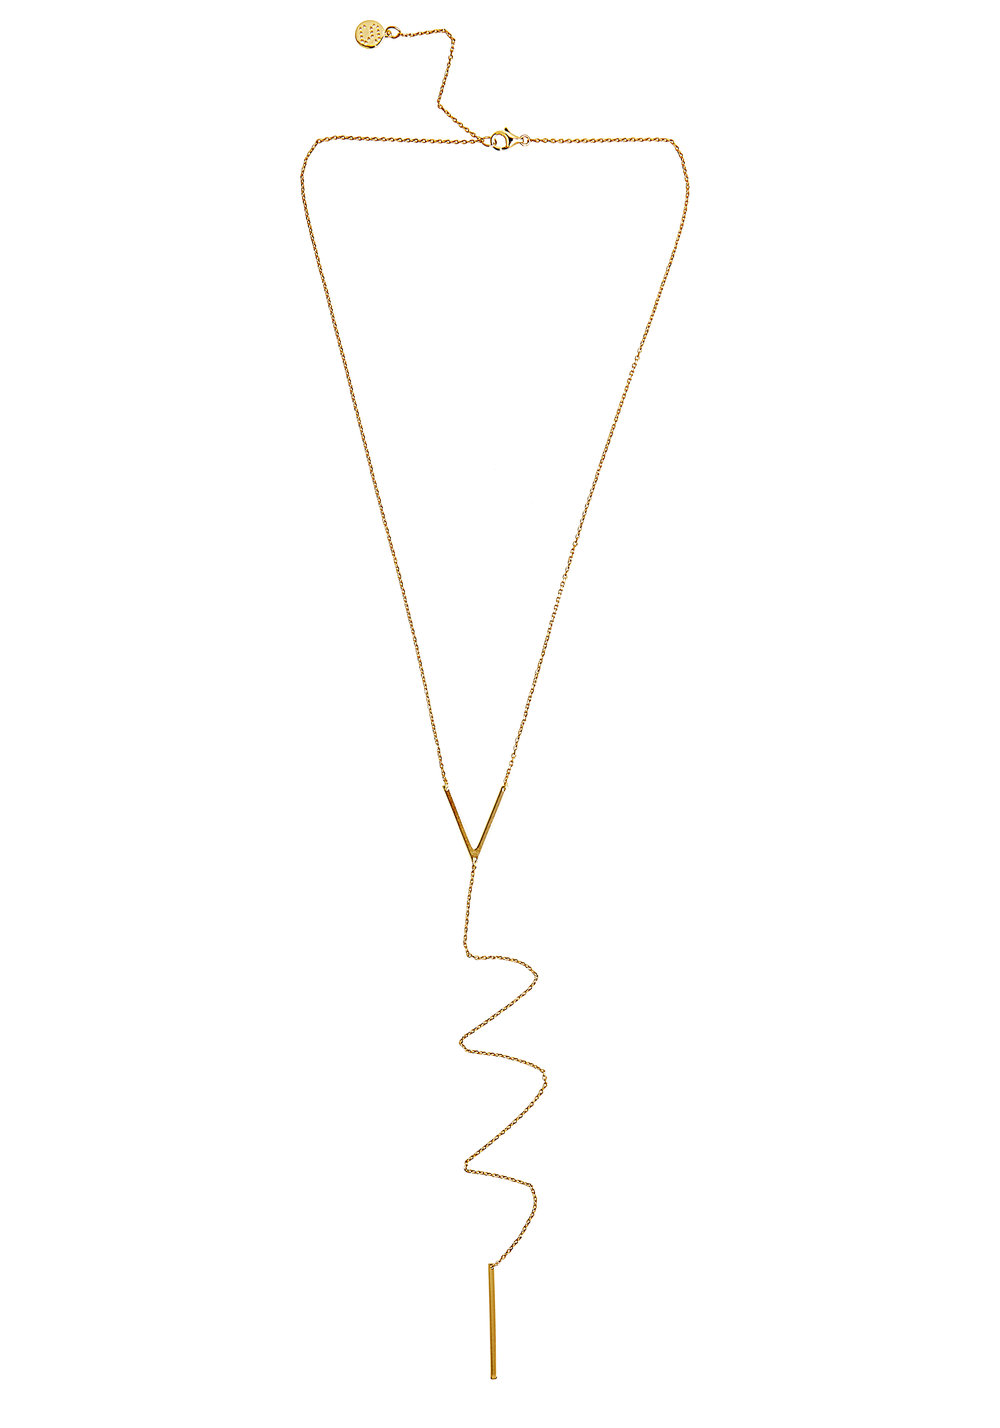 Silk & Steel It%27s a Long Road Gold Plated Sterling Silver Necklace $139 www.silkandsteel.co.nz.jpg